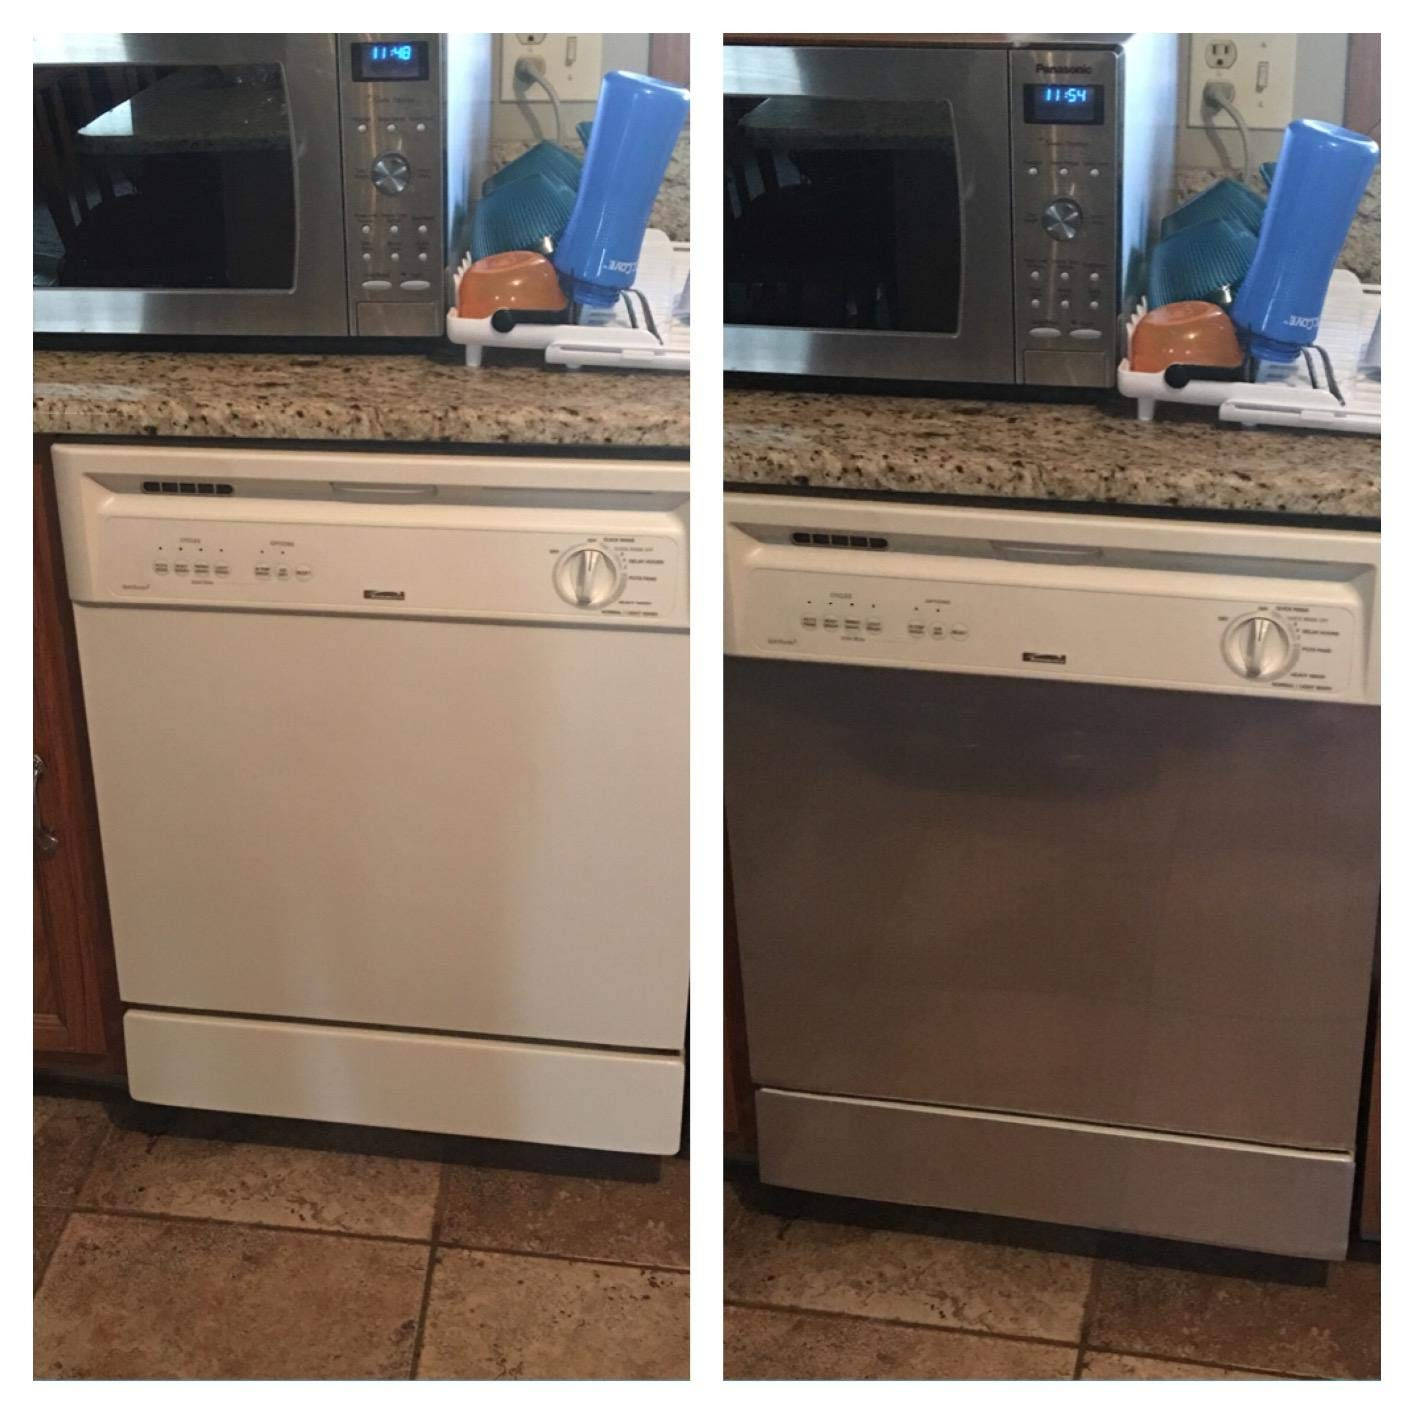 "Instant Stainless® Dishwasher Cover 23.5"" wide by 26"" tall"